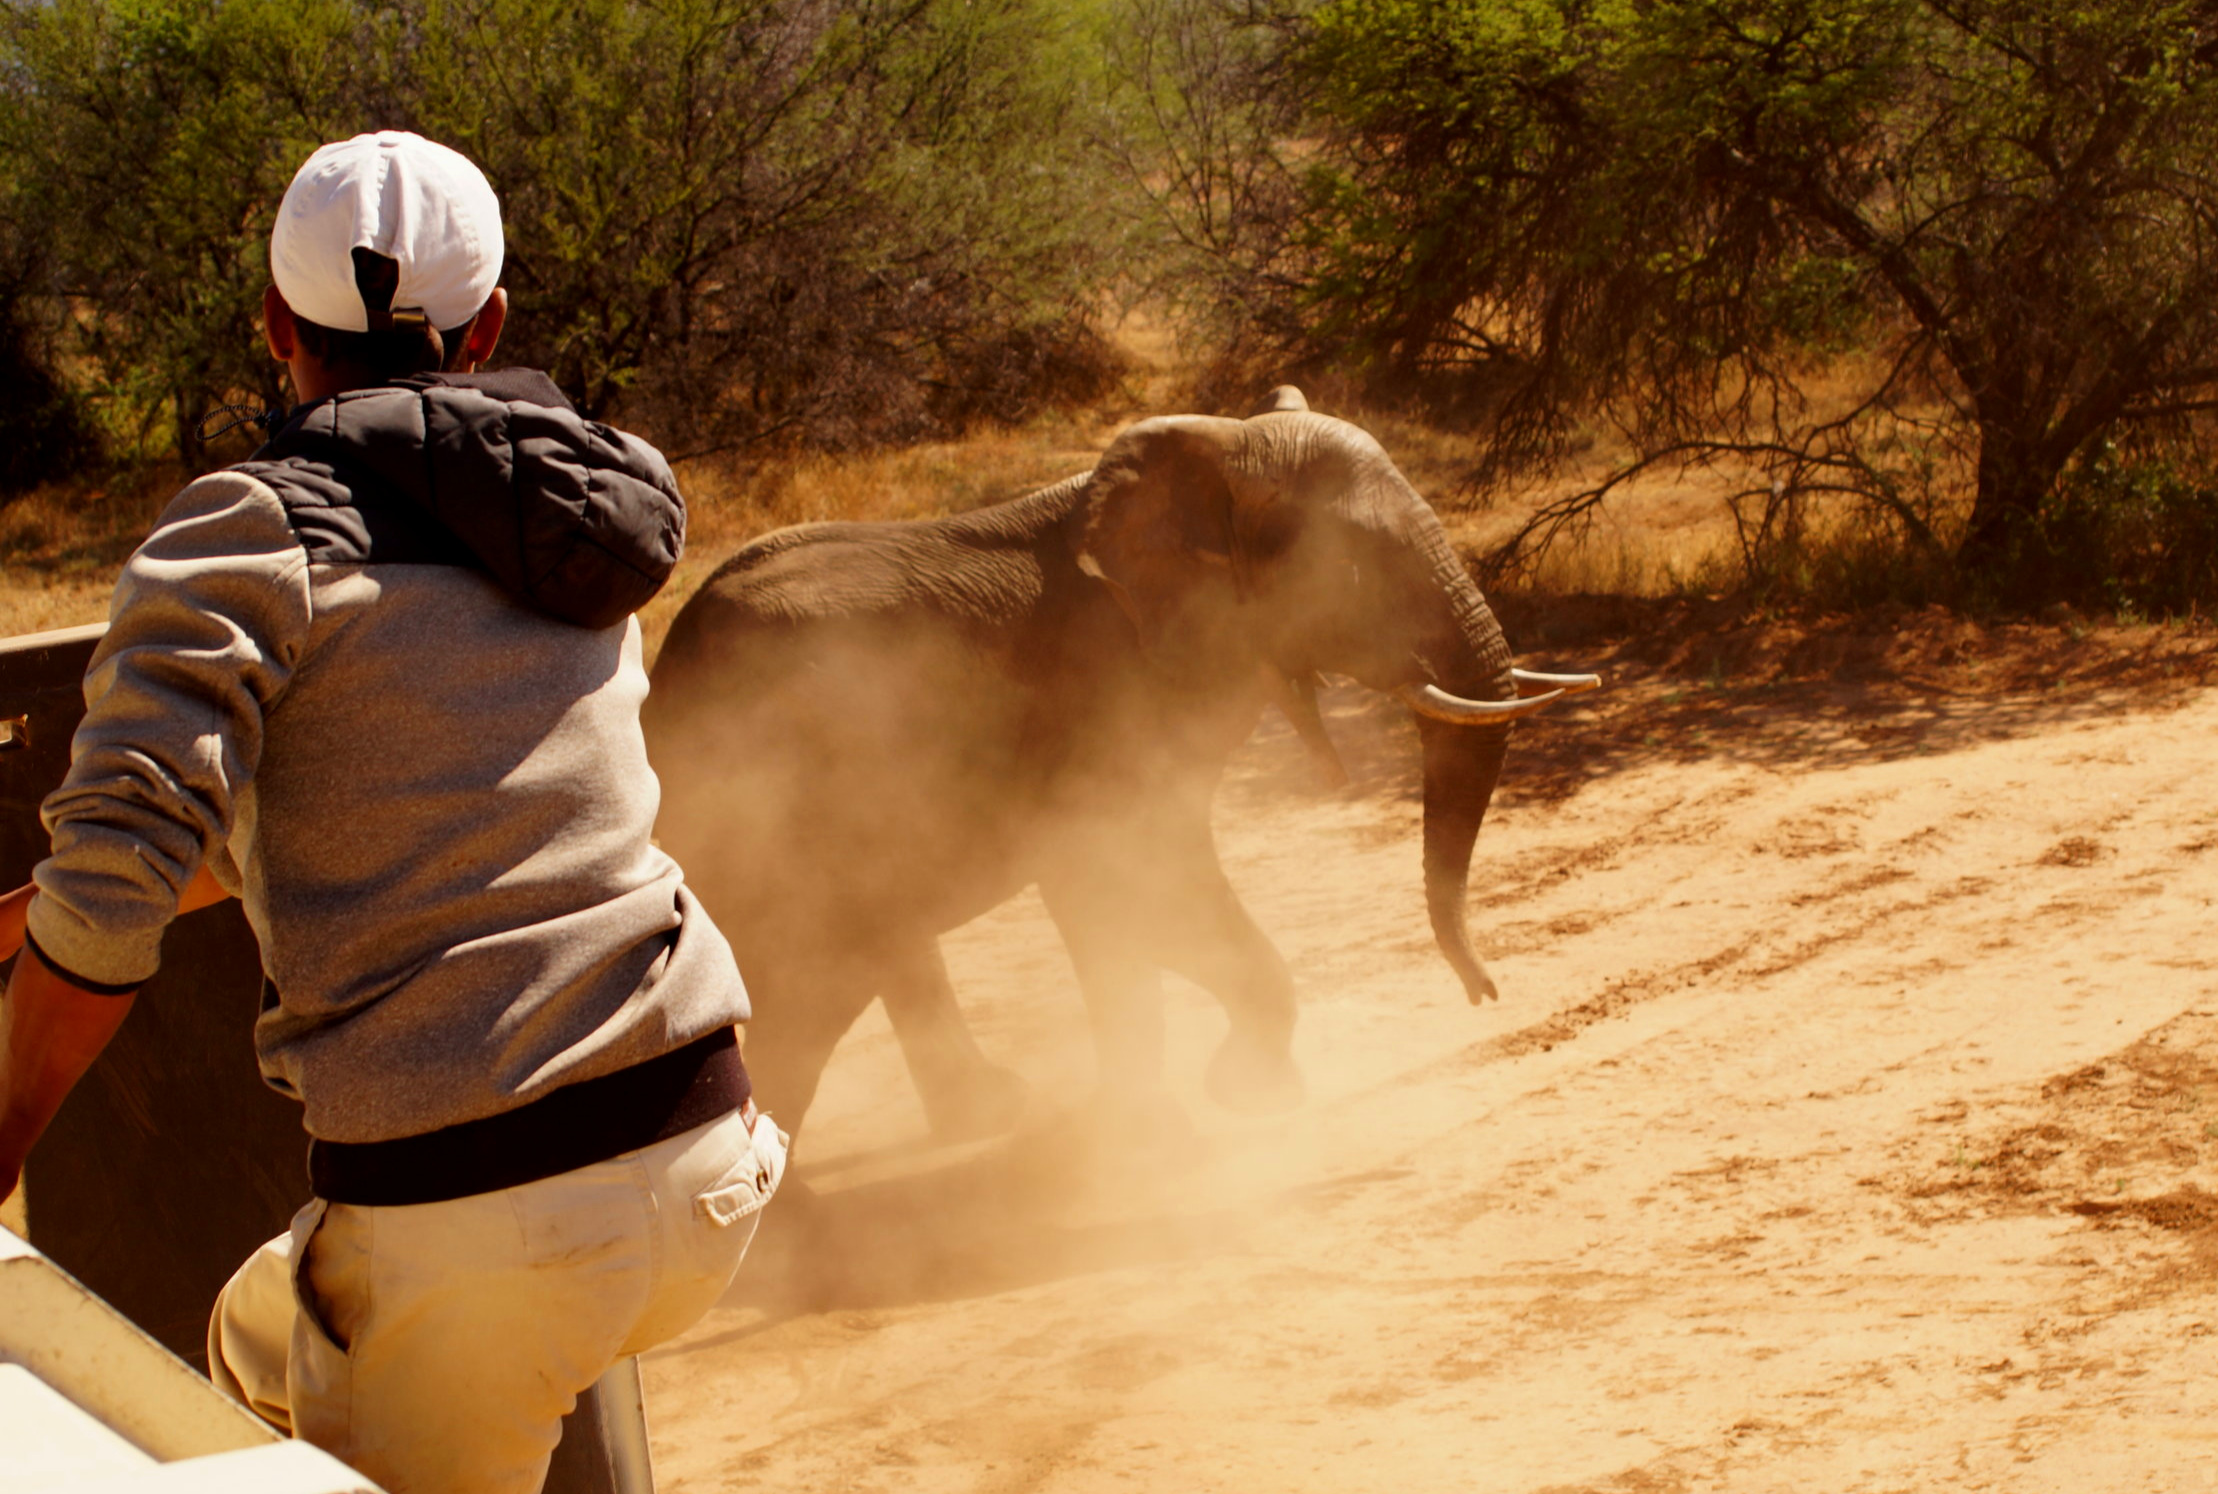 Kahle before disappearing into the bush in a cloud of dust at Samara Private Game Reserve. Photo: Ida Hansen